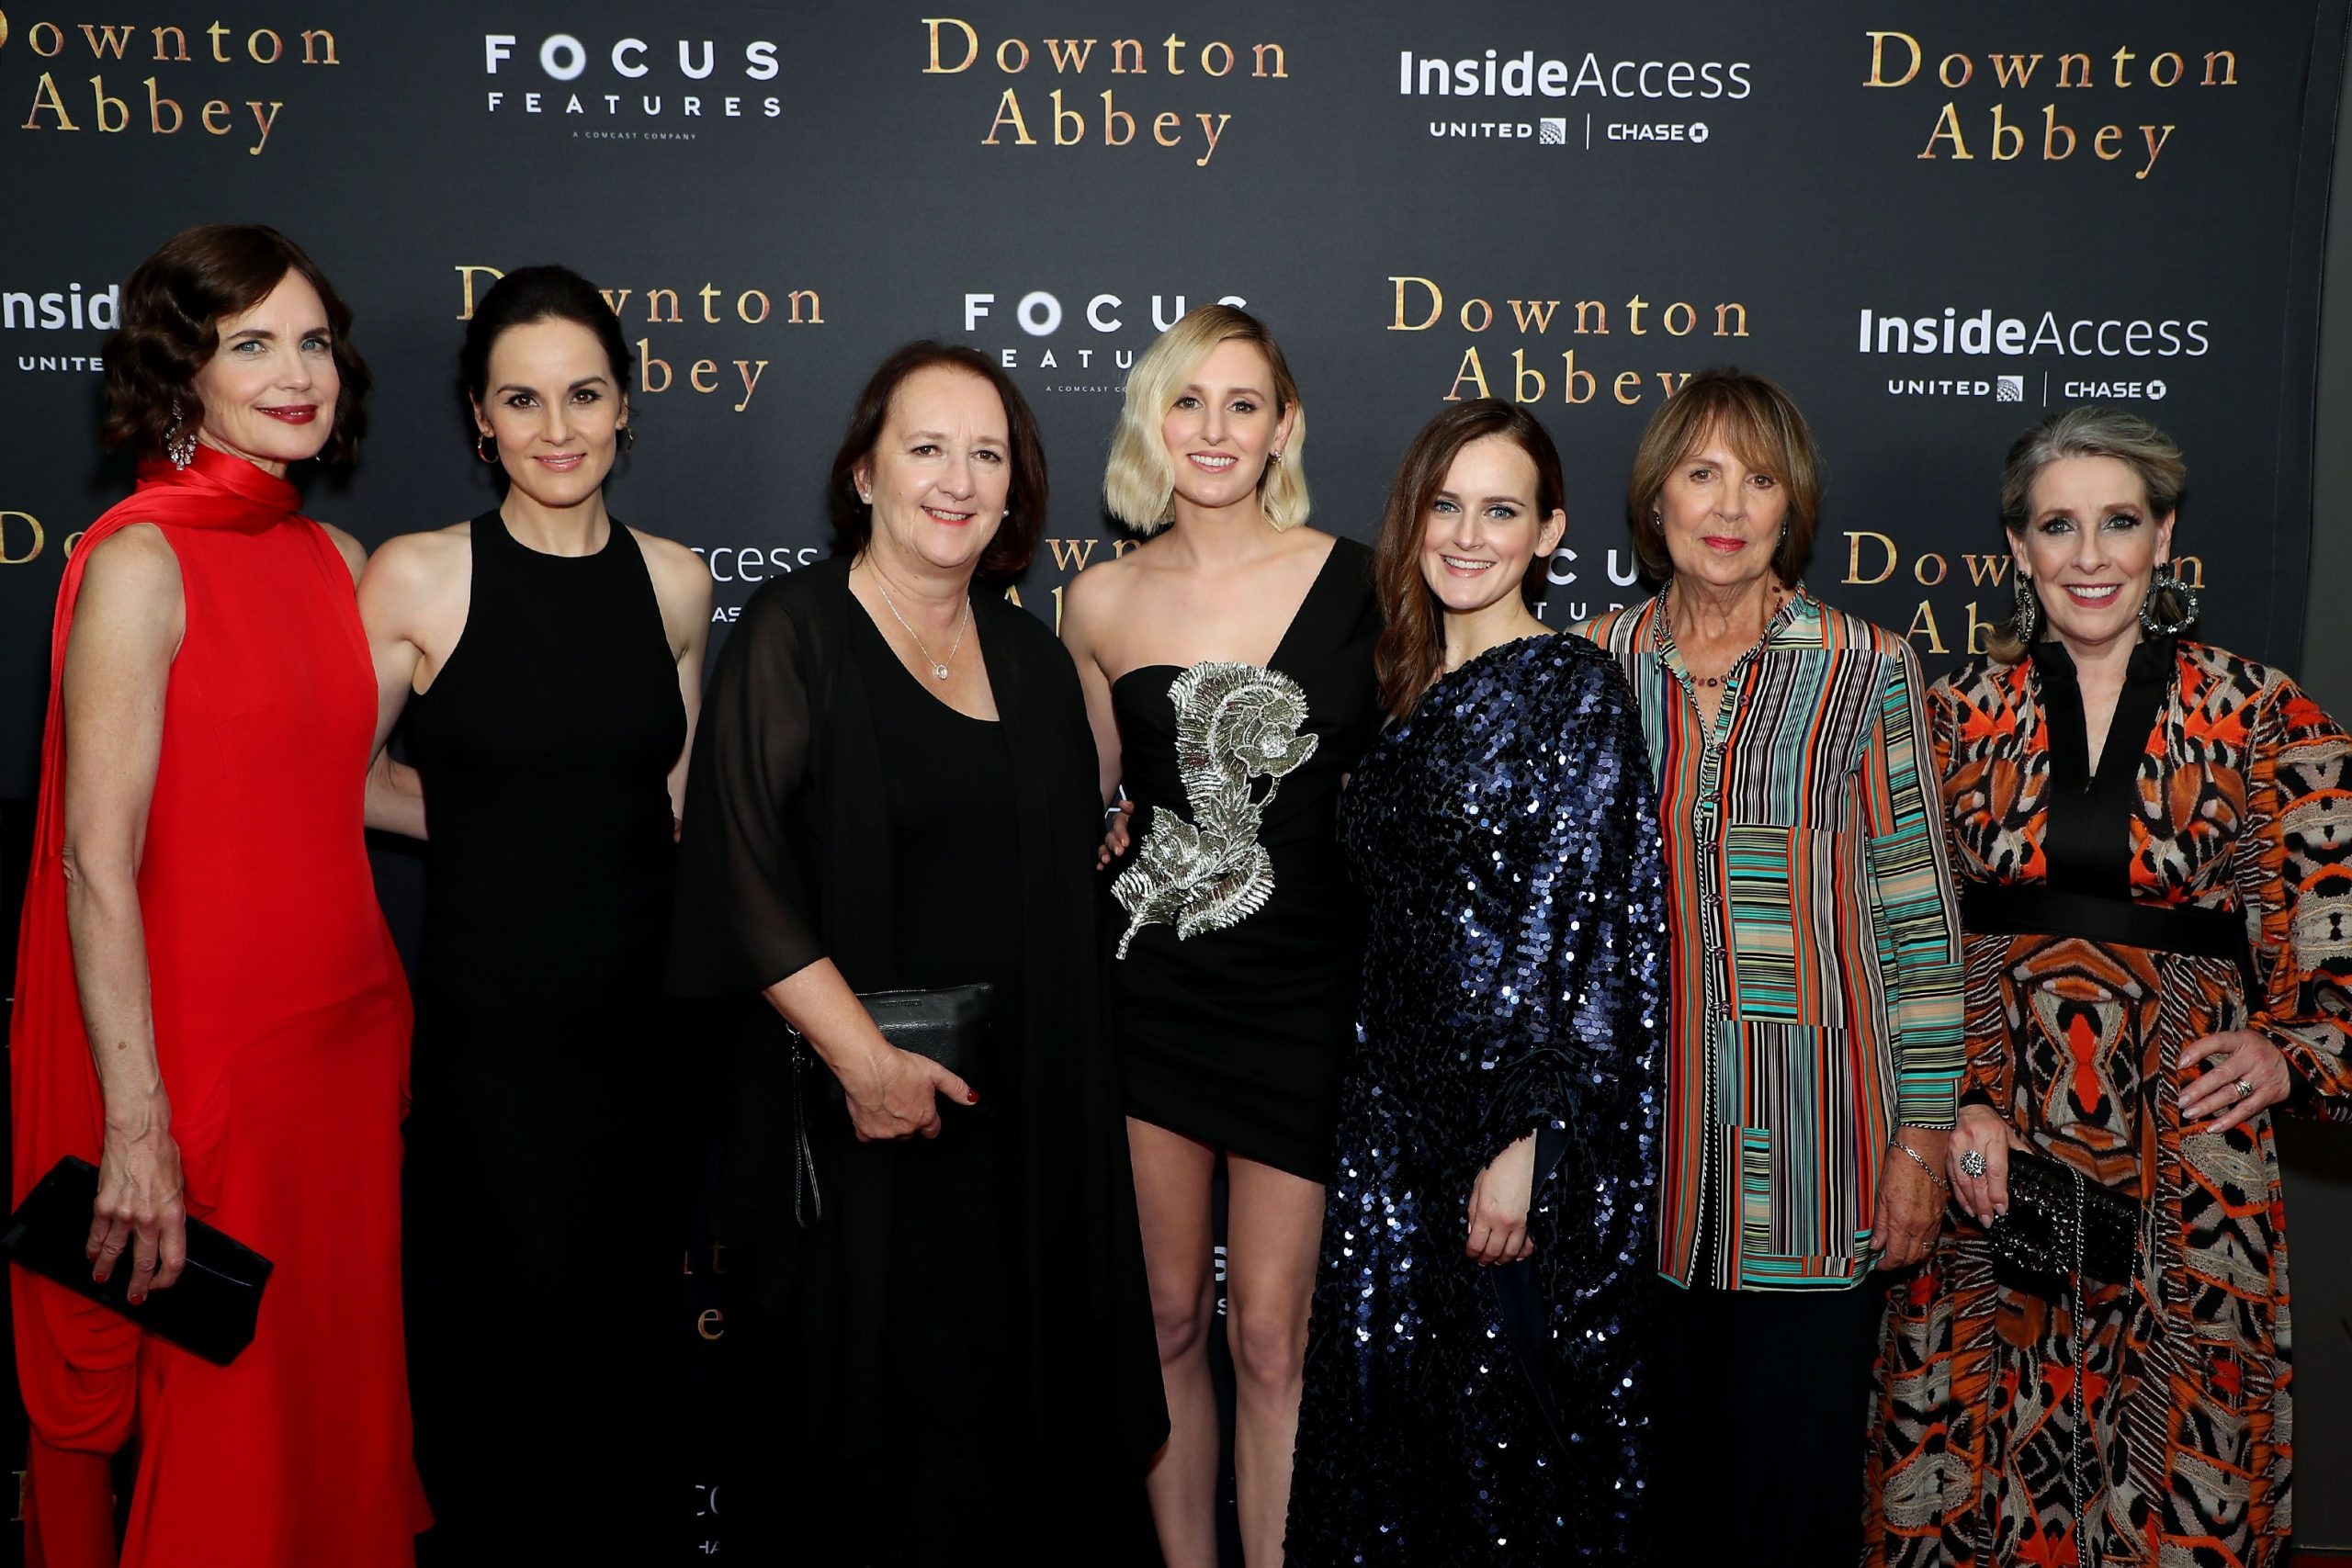 Ladies of Downton Abbey New York City Movie Premiere